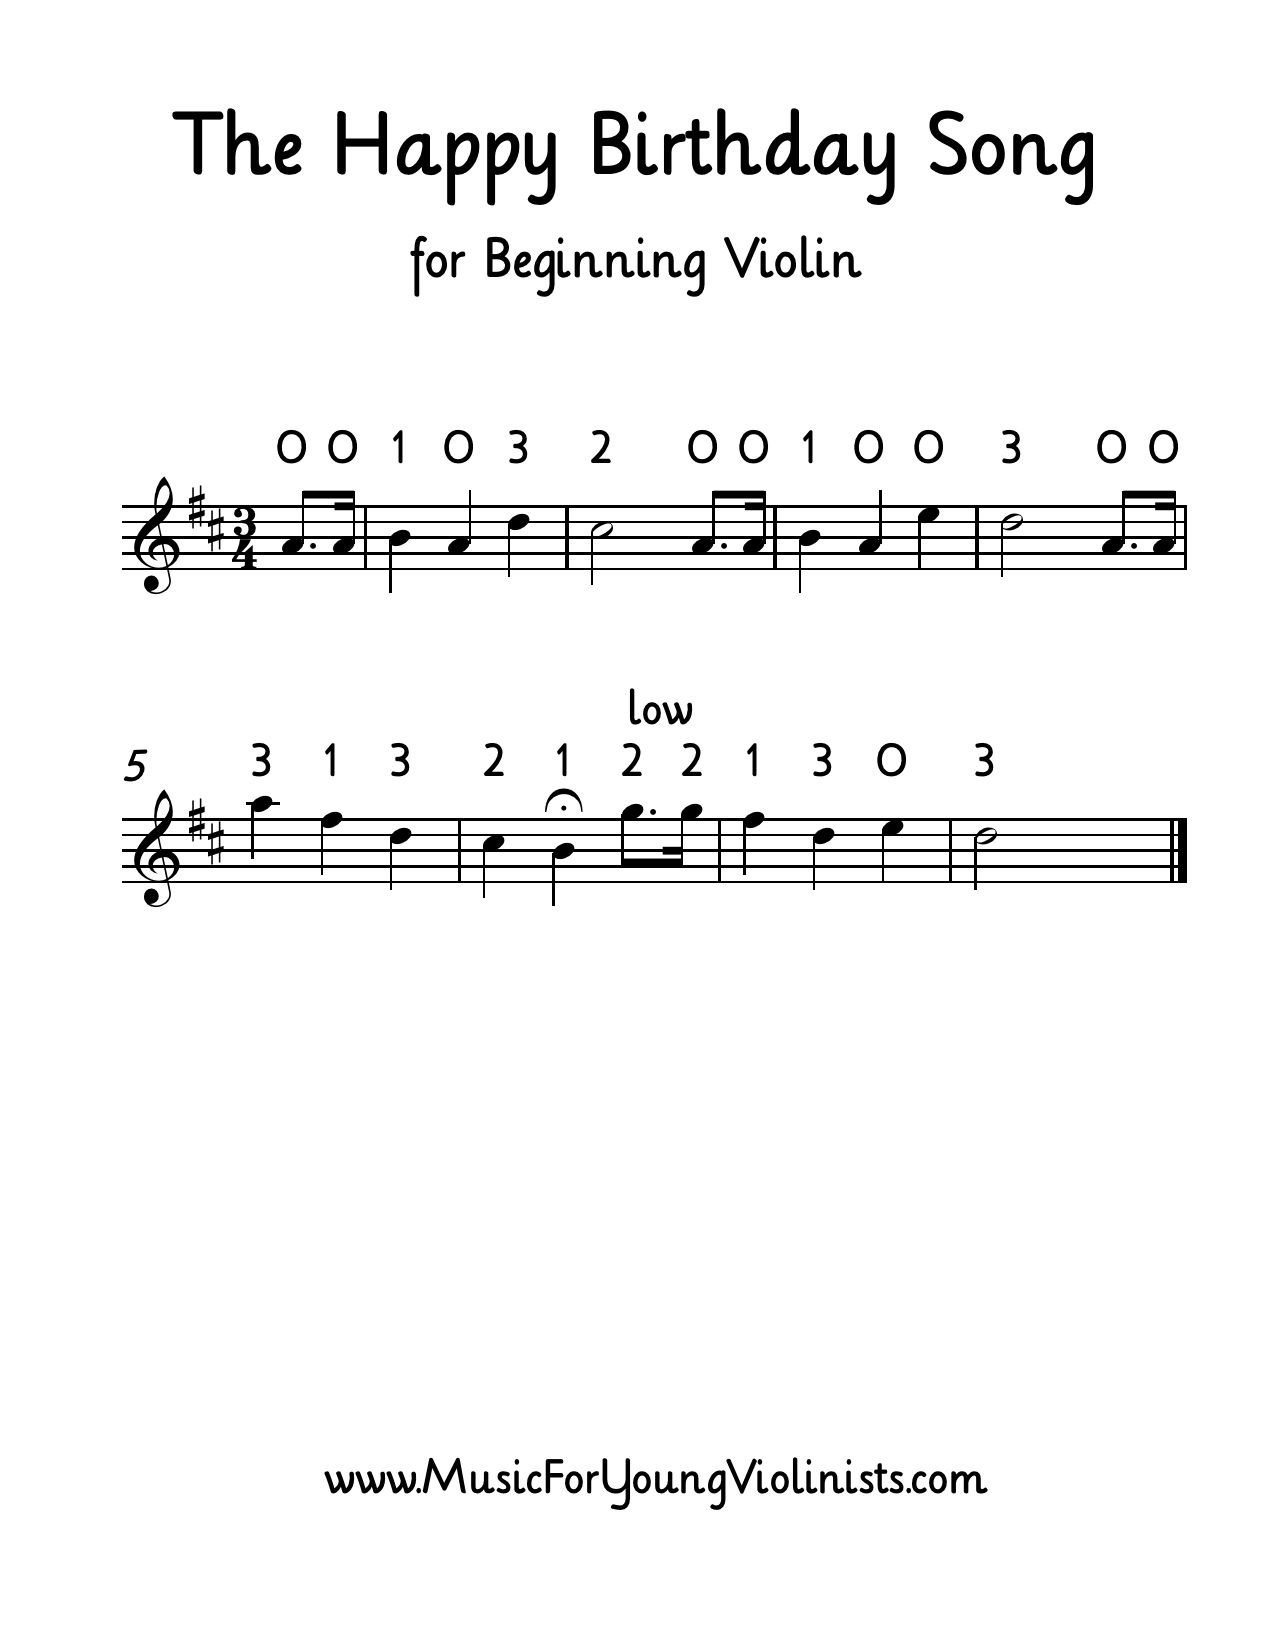 THE HAPPY BIRTHDAY SONG for beginning violin  Get this and